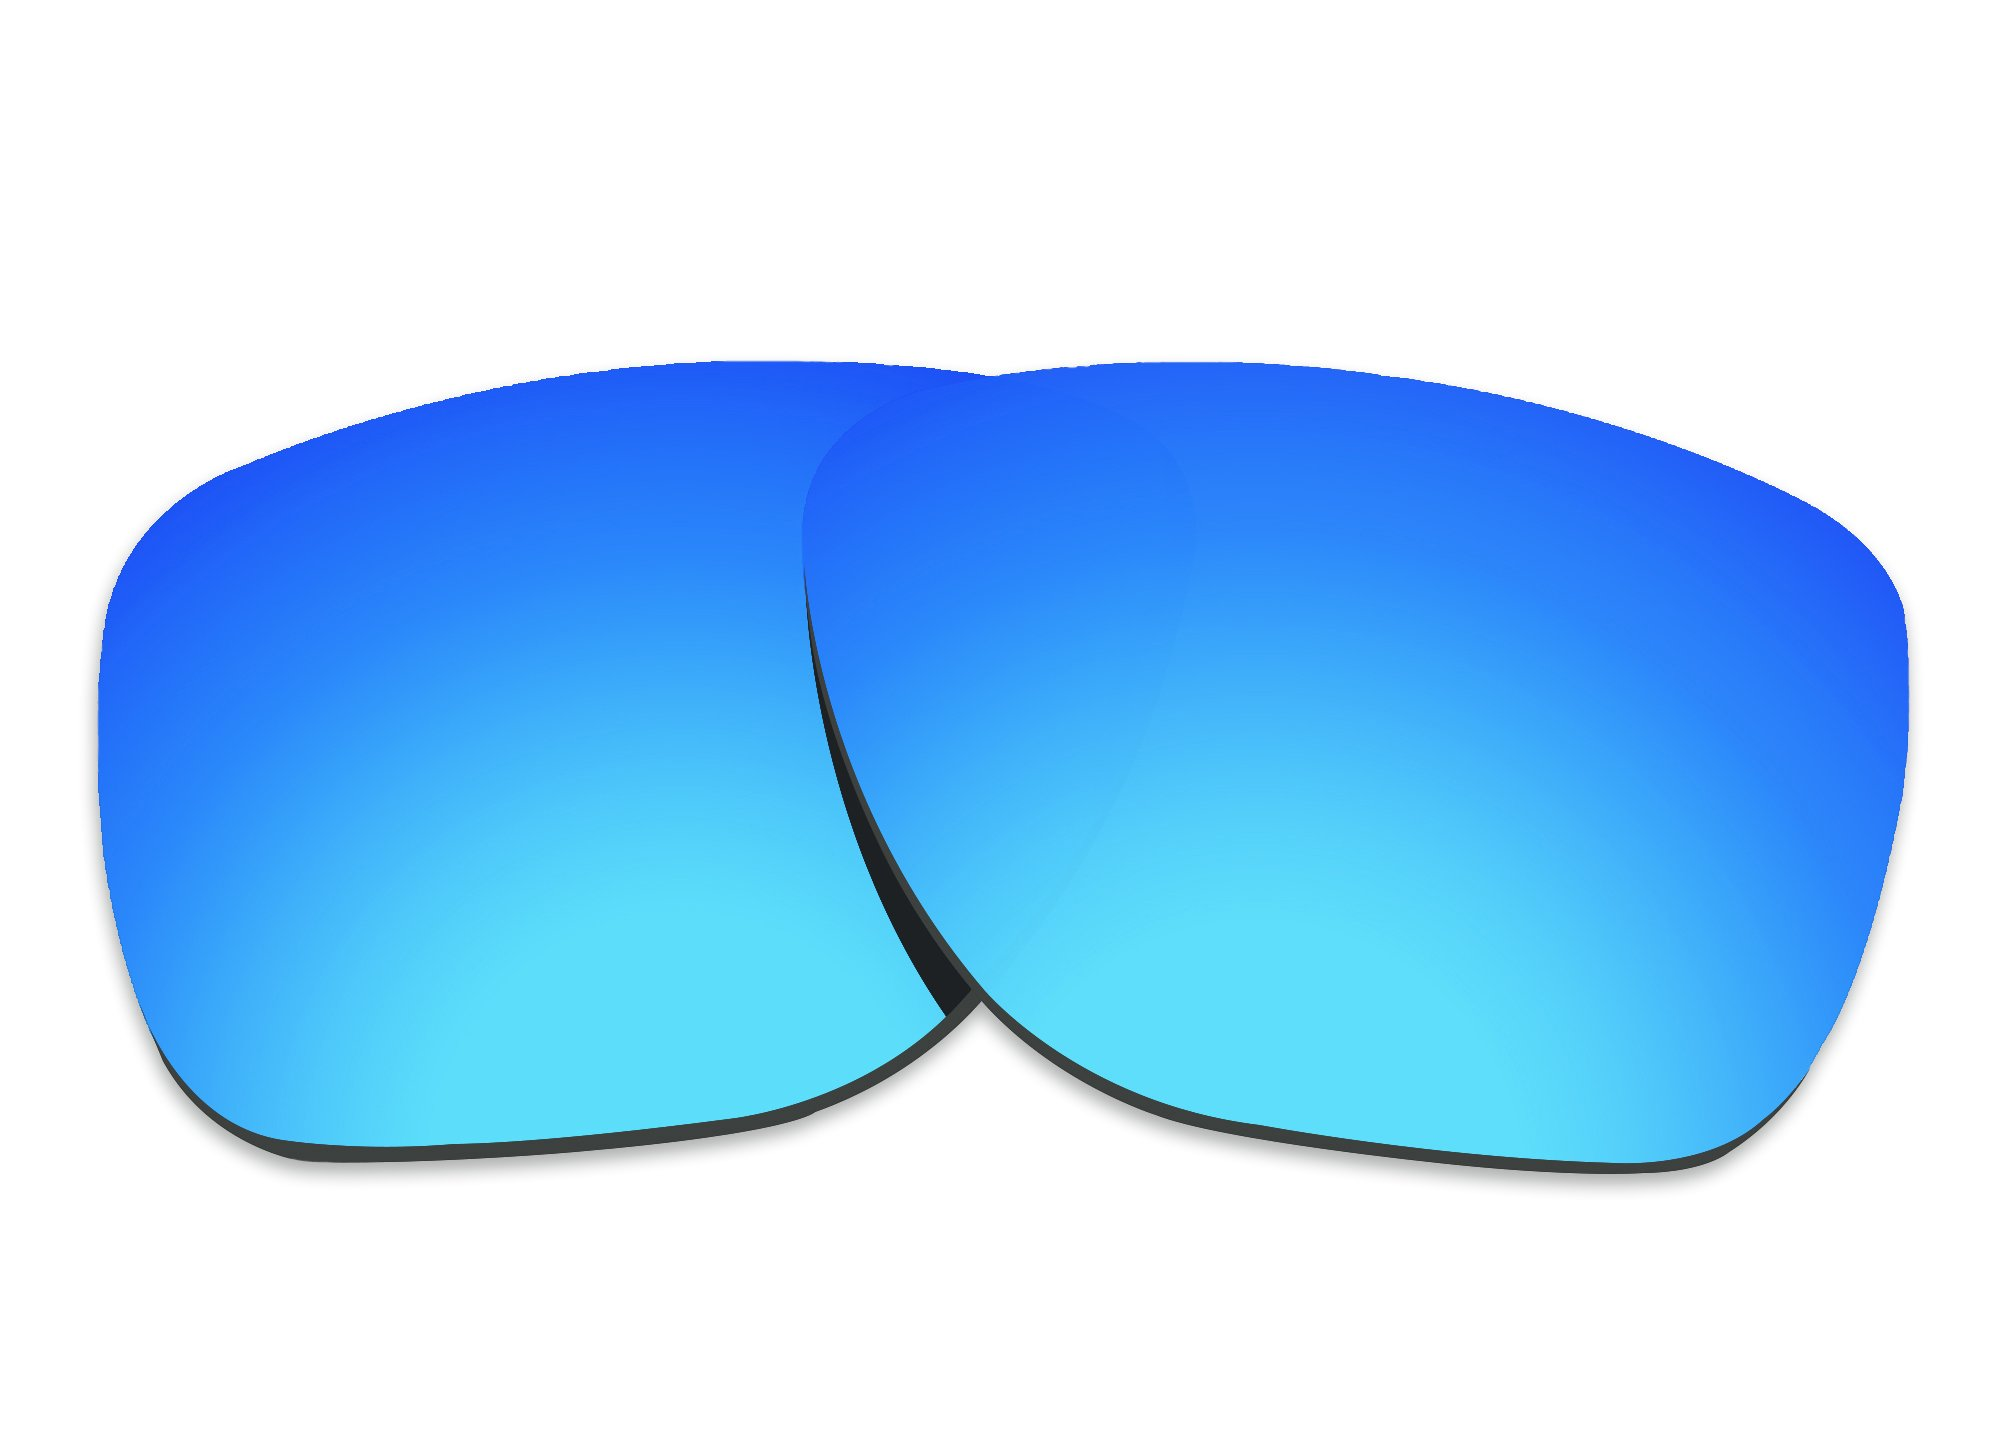 COLOR STAY LENSES 2.0mm Thickness Polarized Replacement Lenses for Oakley Crossrange XL OO9360 Blue Mirror Coatings by COLOR STAY LENSES